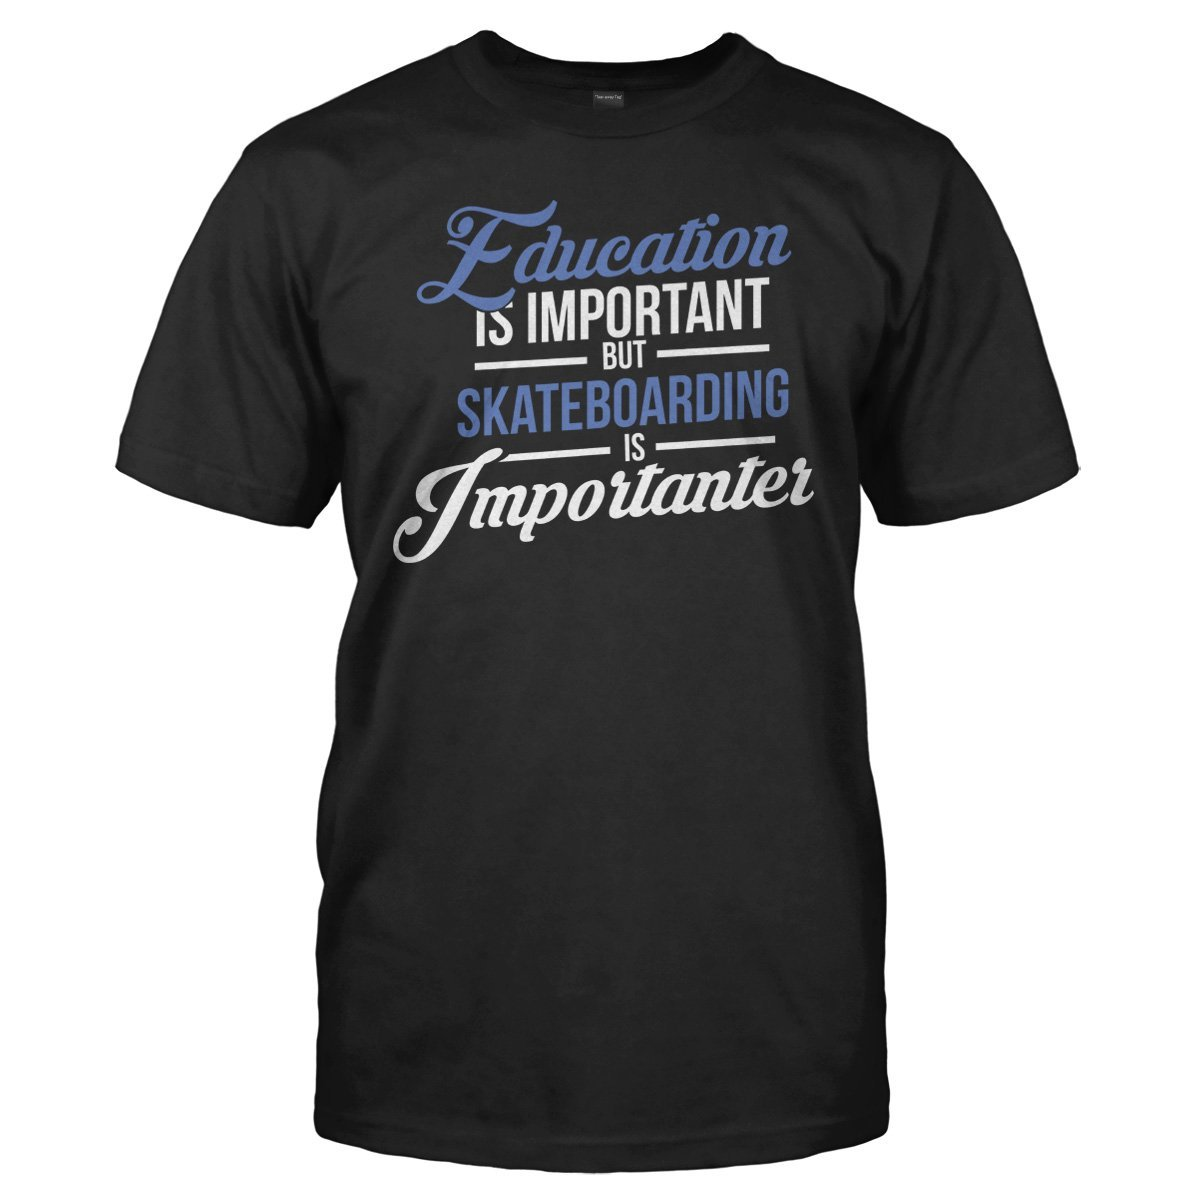 Education is Important, But Skateboarding is Importanter - T Shirt